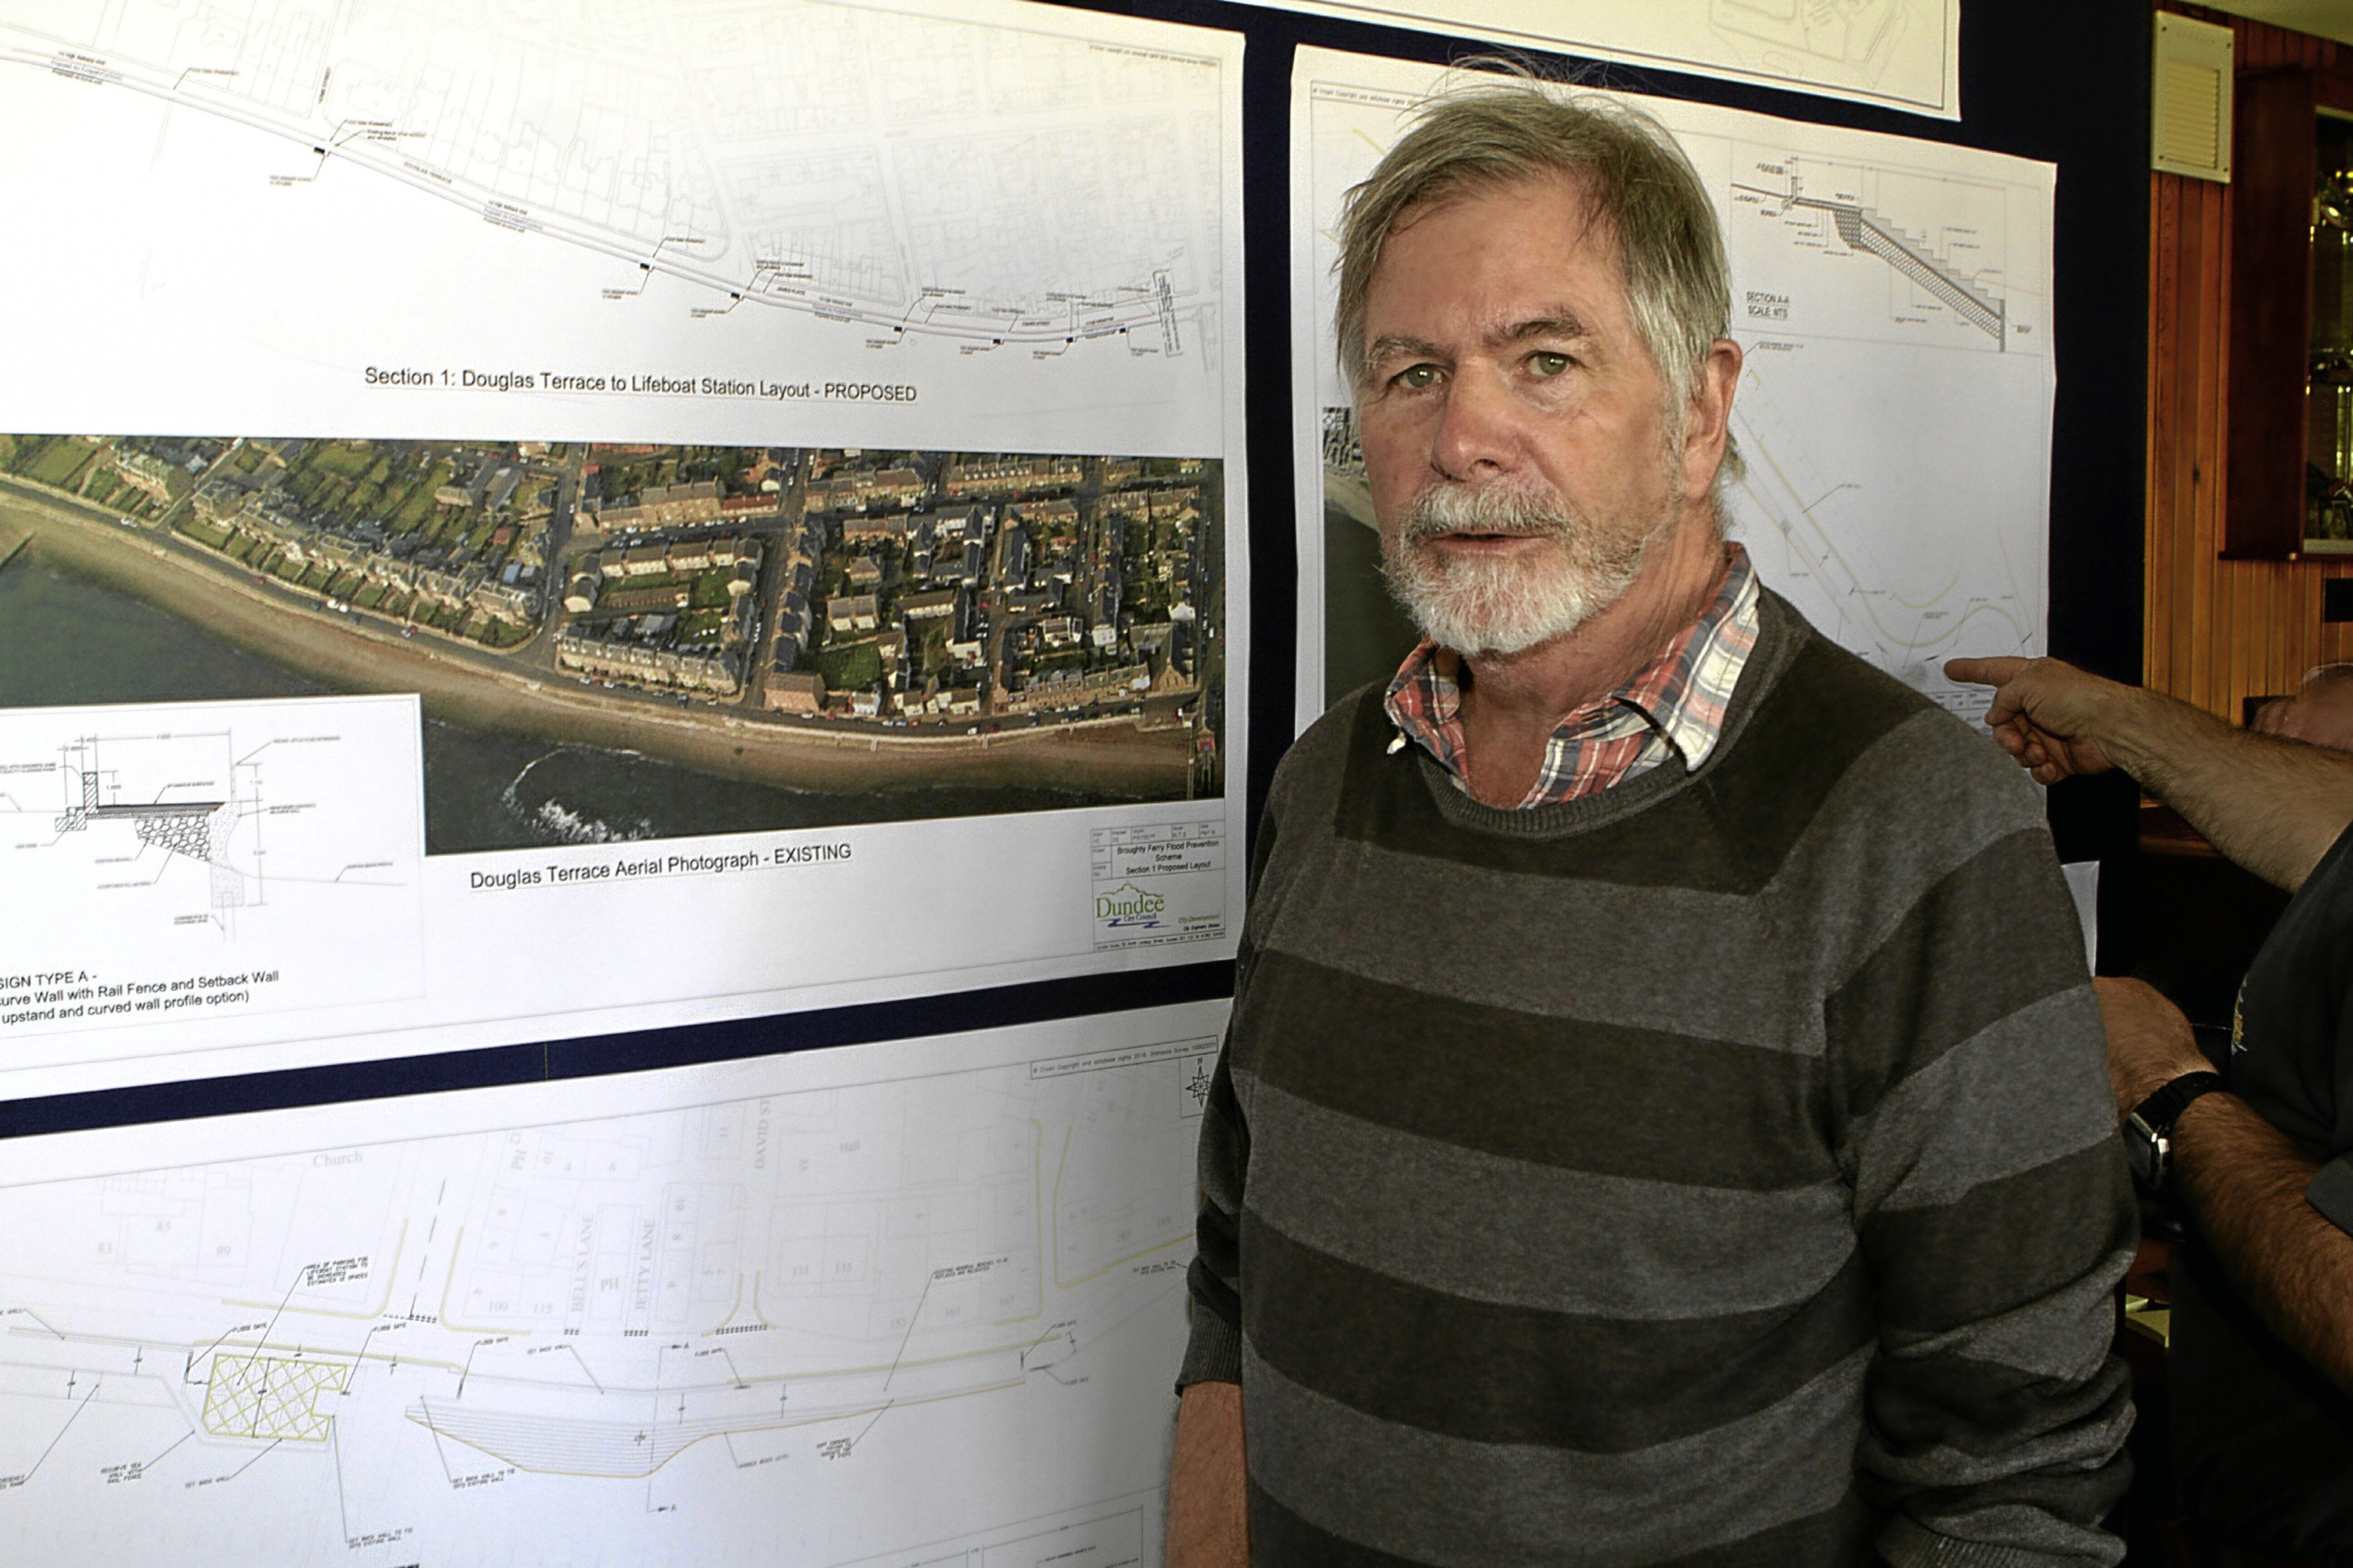 Chairman of Dundee Civic Trust Nick Day at the public consultation.